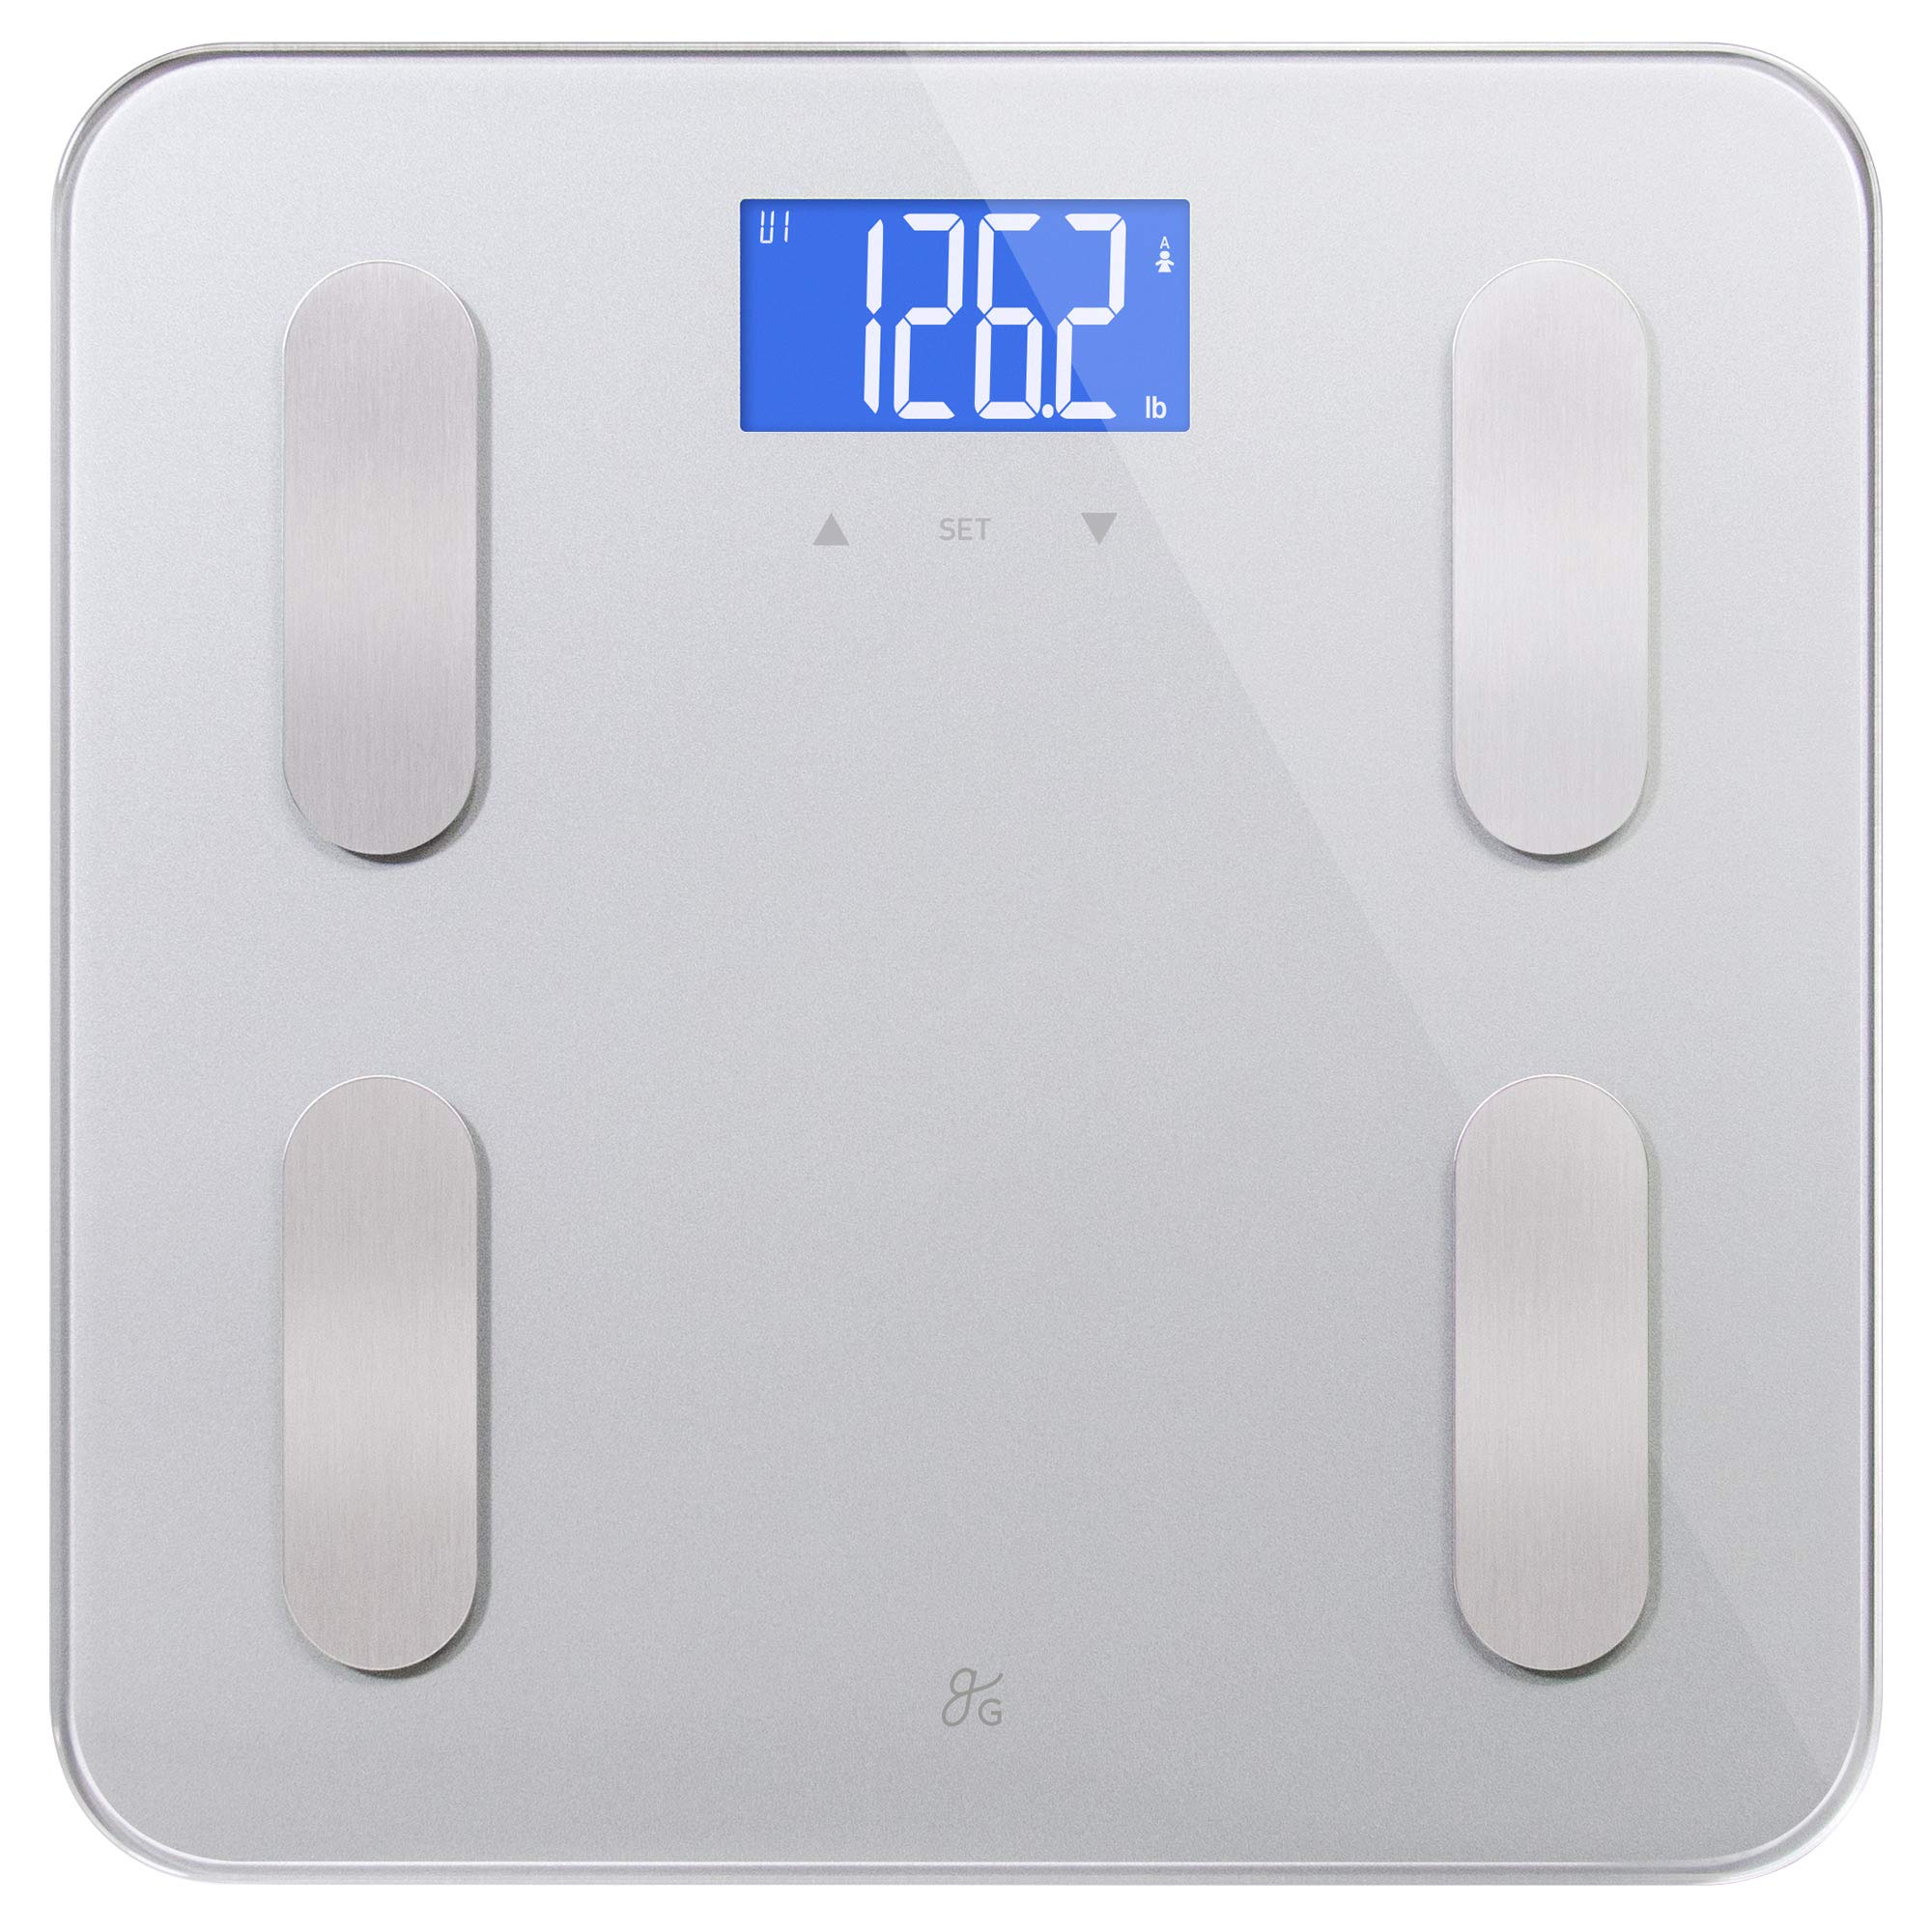 Digital Body Fat Weight Scale by GreaterGoods, (2019 Update) Accurate Health Metrics, Body Composition & Weight Measurements, Glass Top, with Large Backlit Display (Grey)